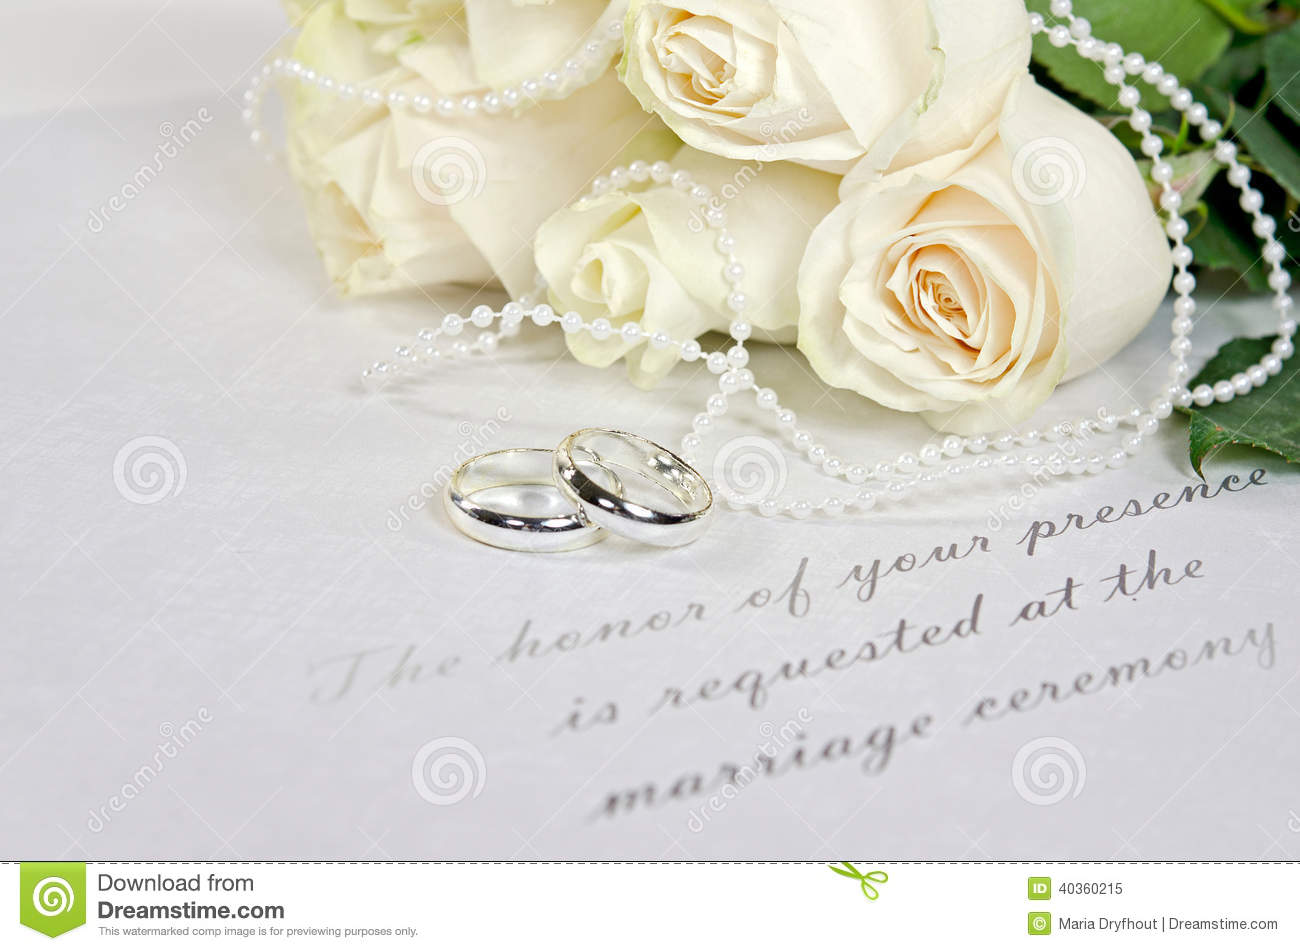 wedding love rings day iphone flowers wallpaper garden bouquet roses flower petals desktop beautiful plus special